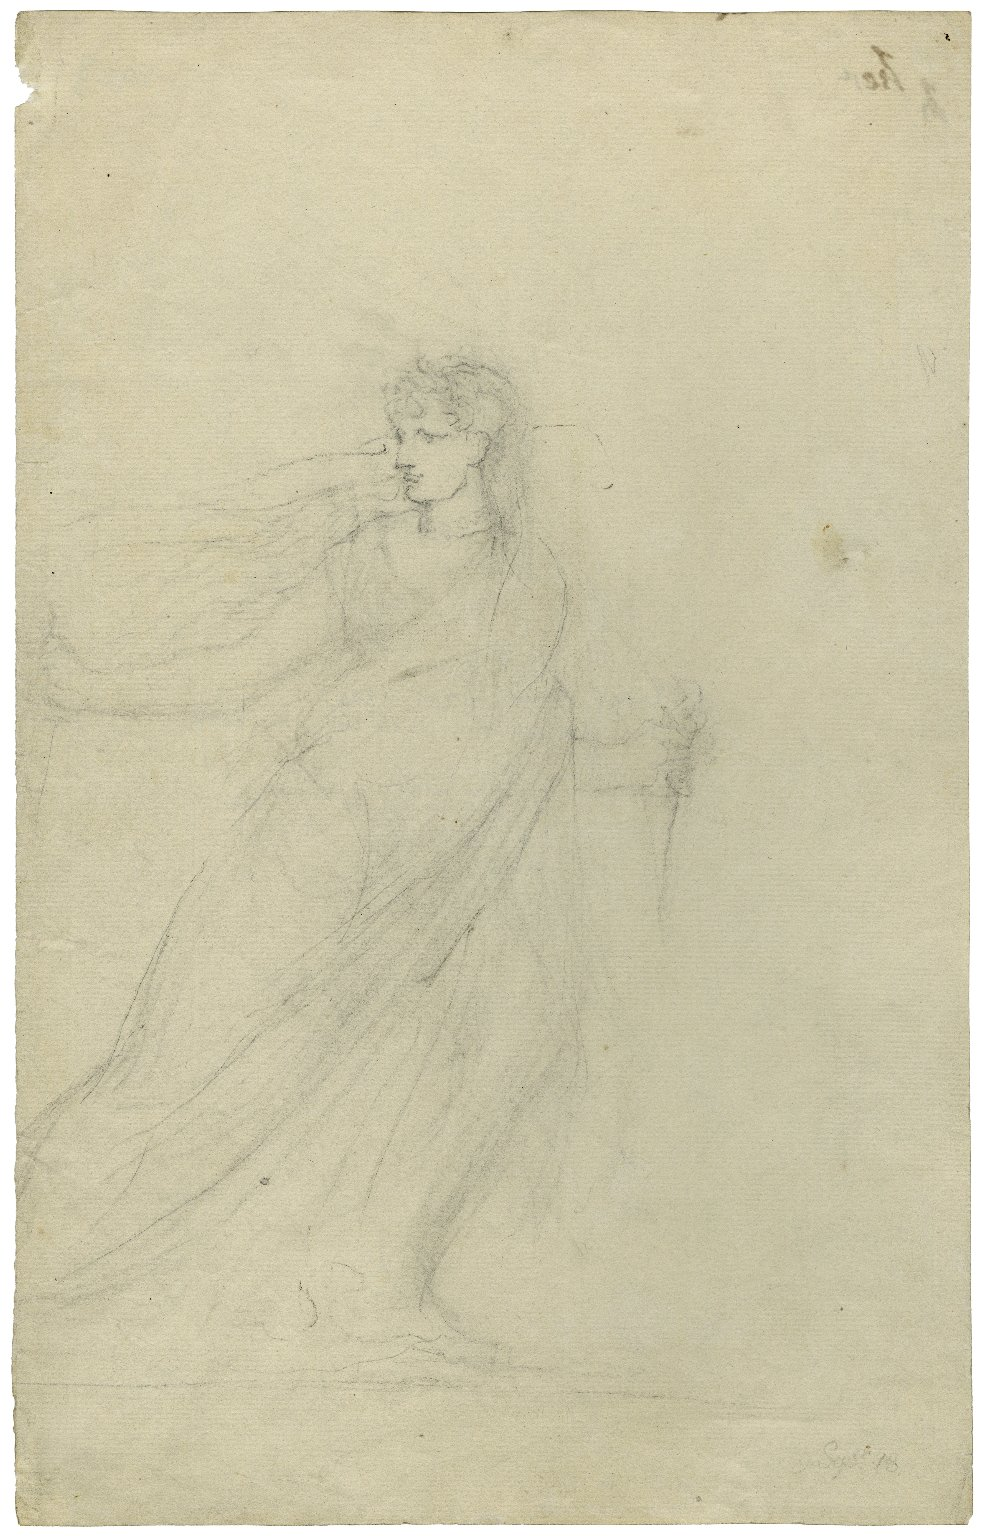 [Lady Macbeth with the dagger] [graphic] / [Henry Fuseli]